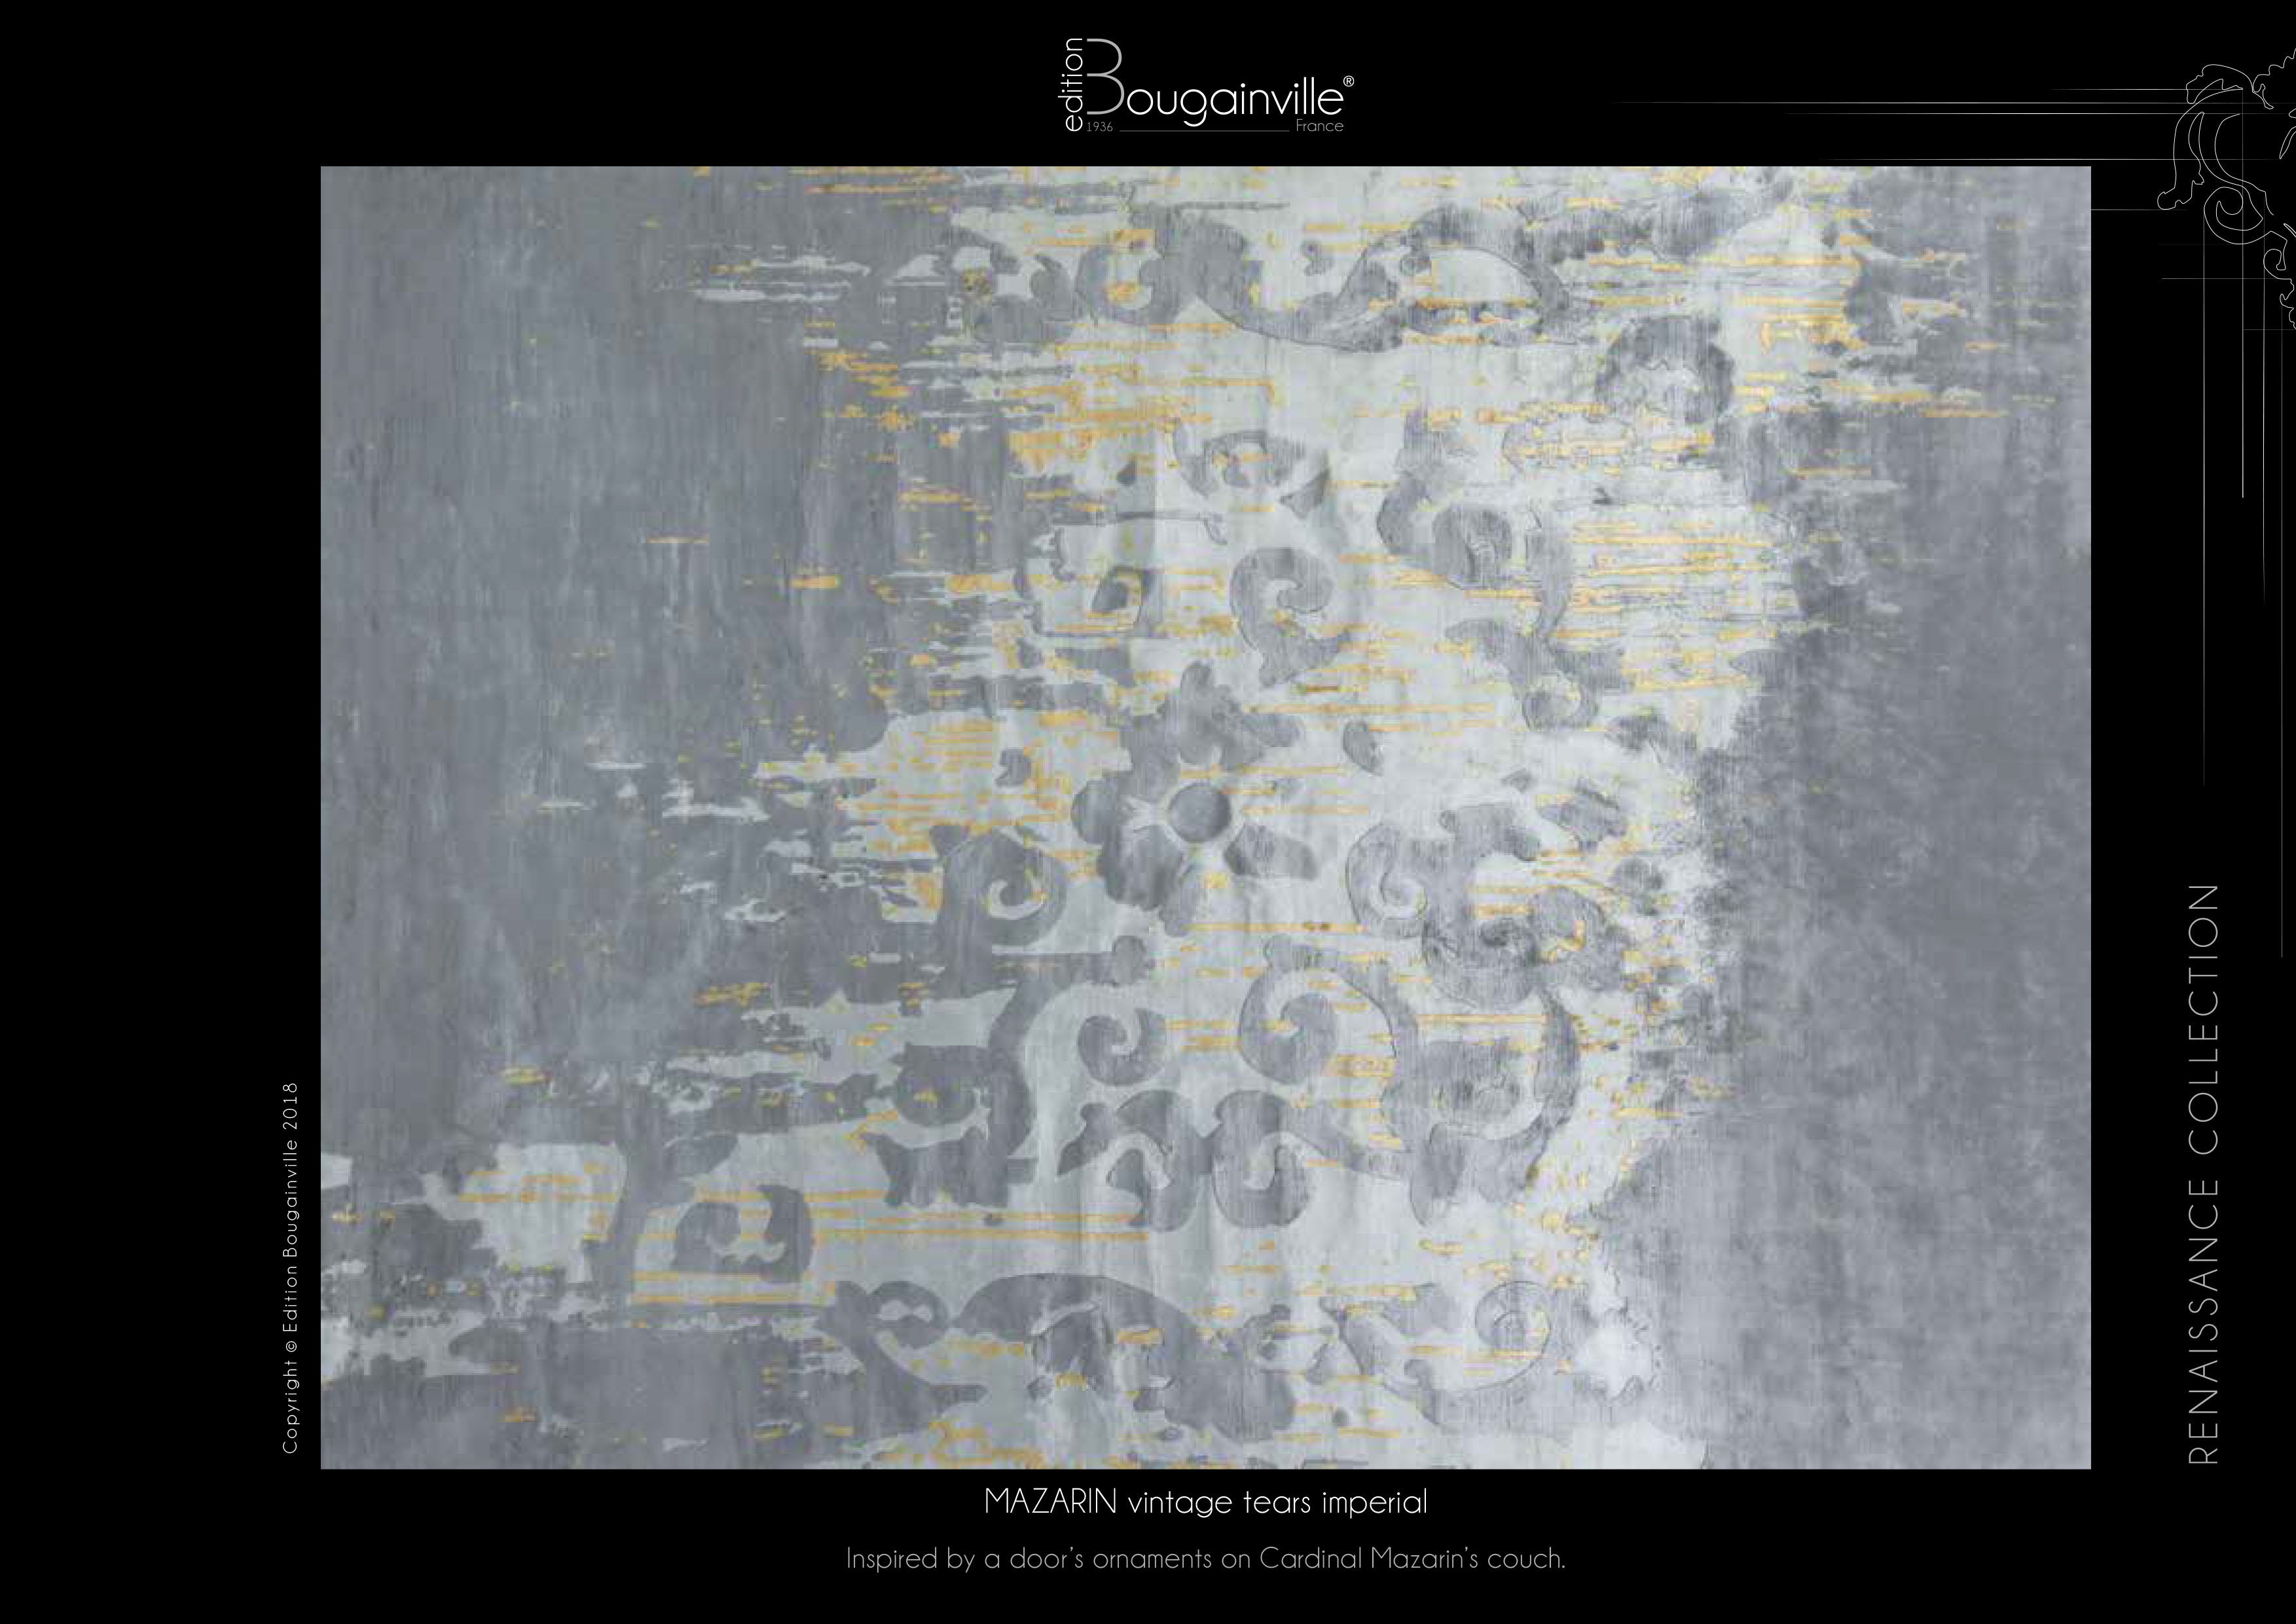 Ковер Edition Bougainville, MAZARIN vintage tears imperial